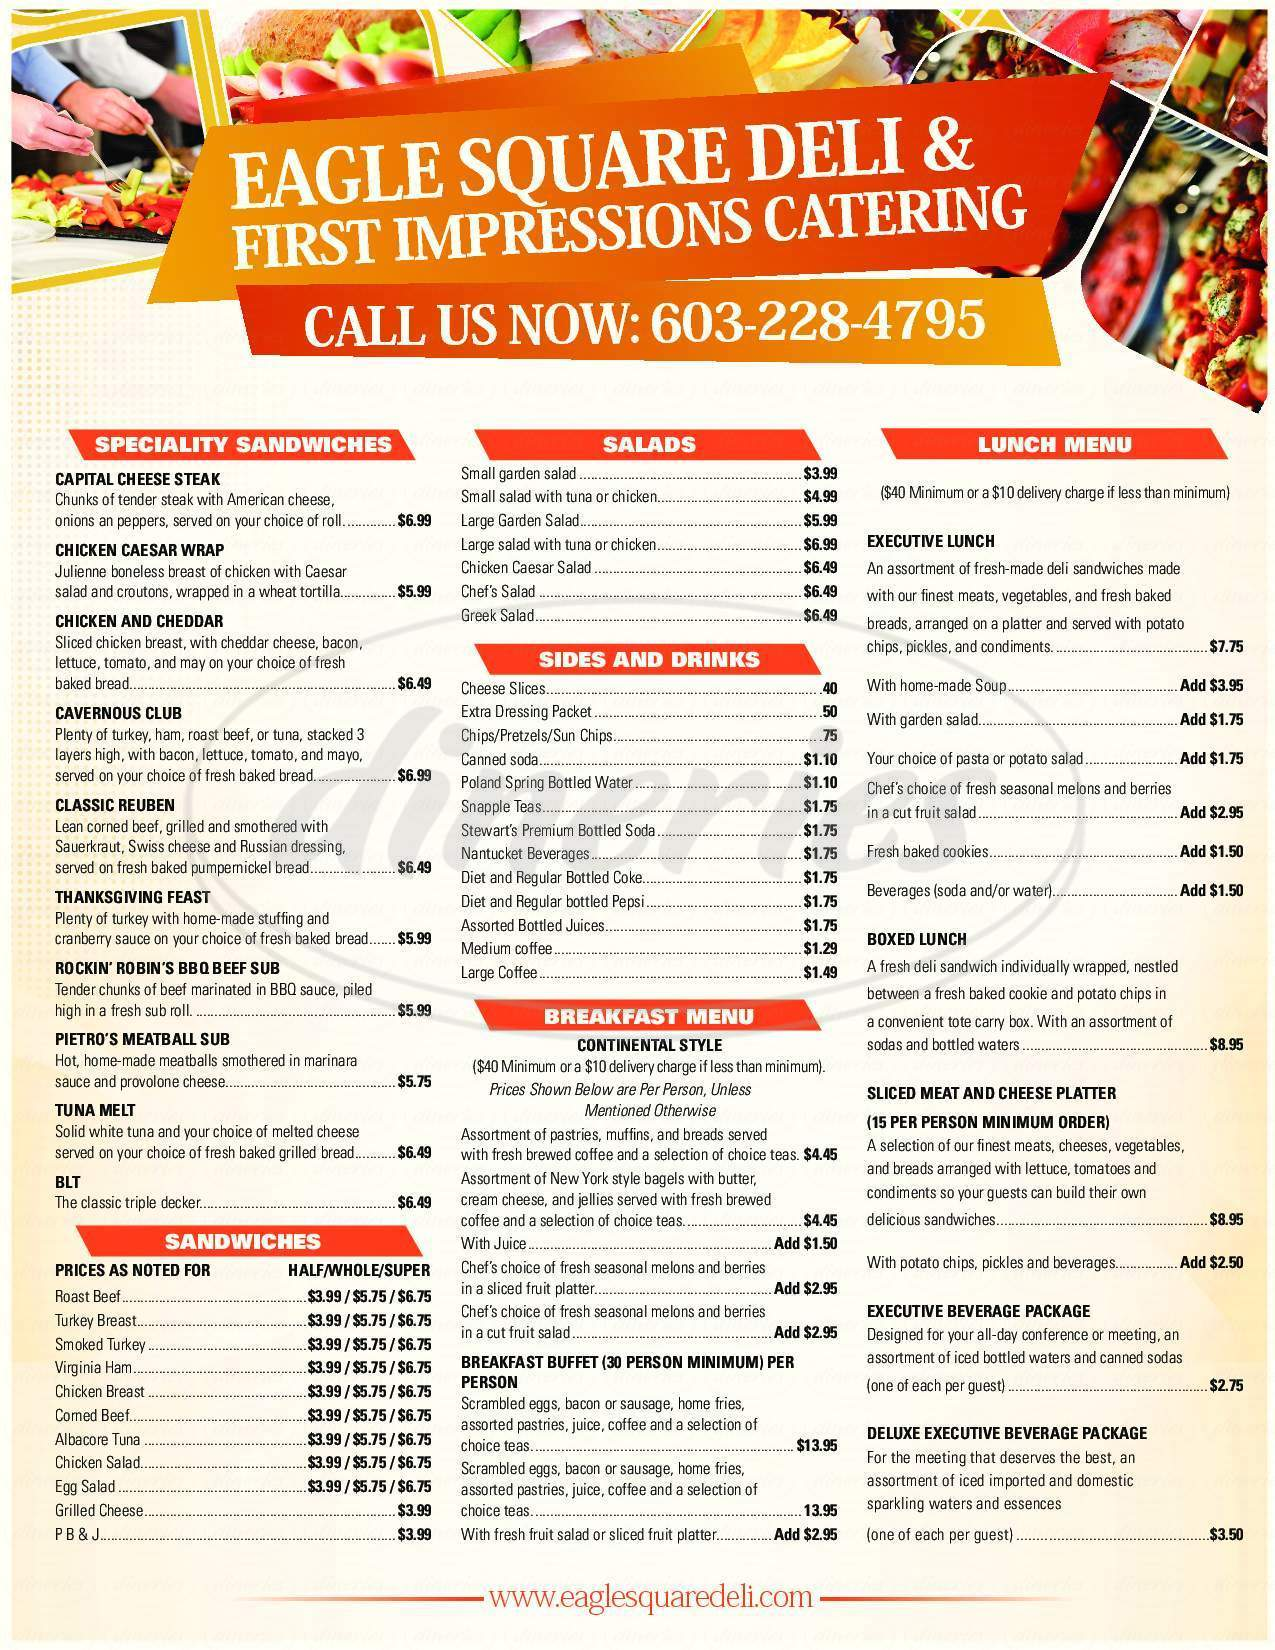 menu for Eagle Square Deli & First Impressions Catering